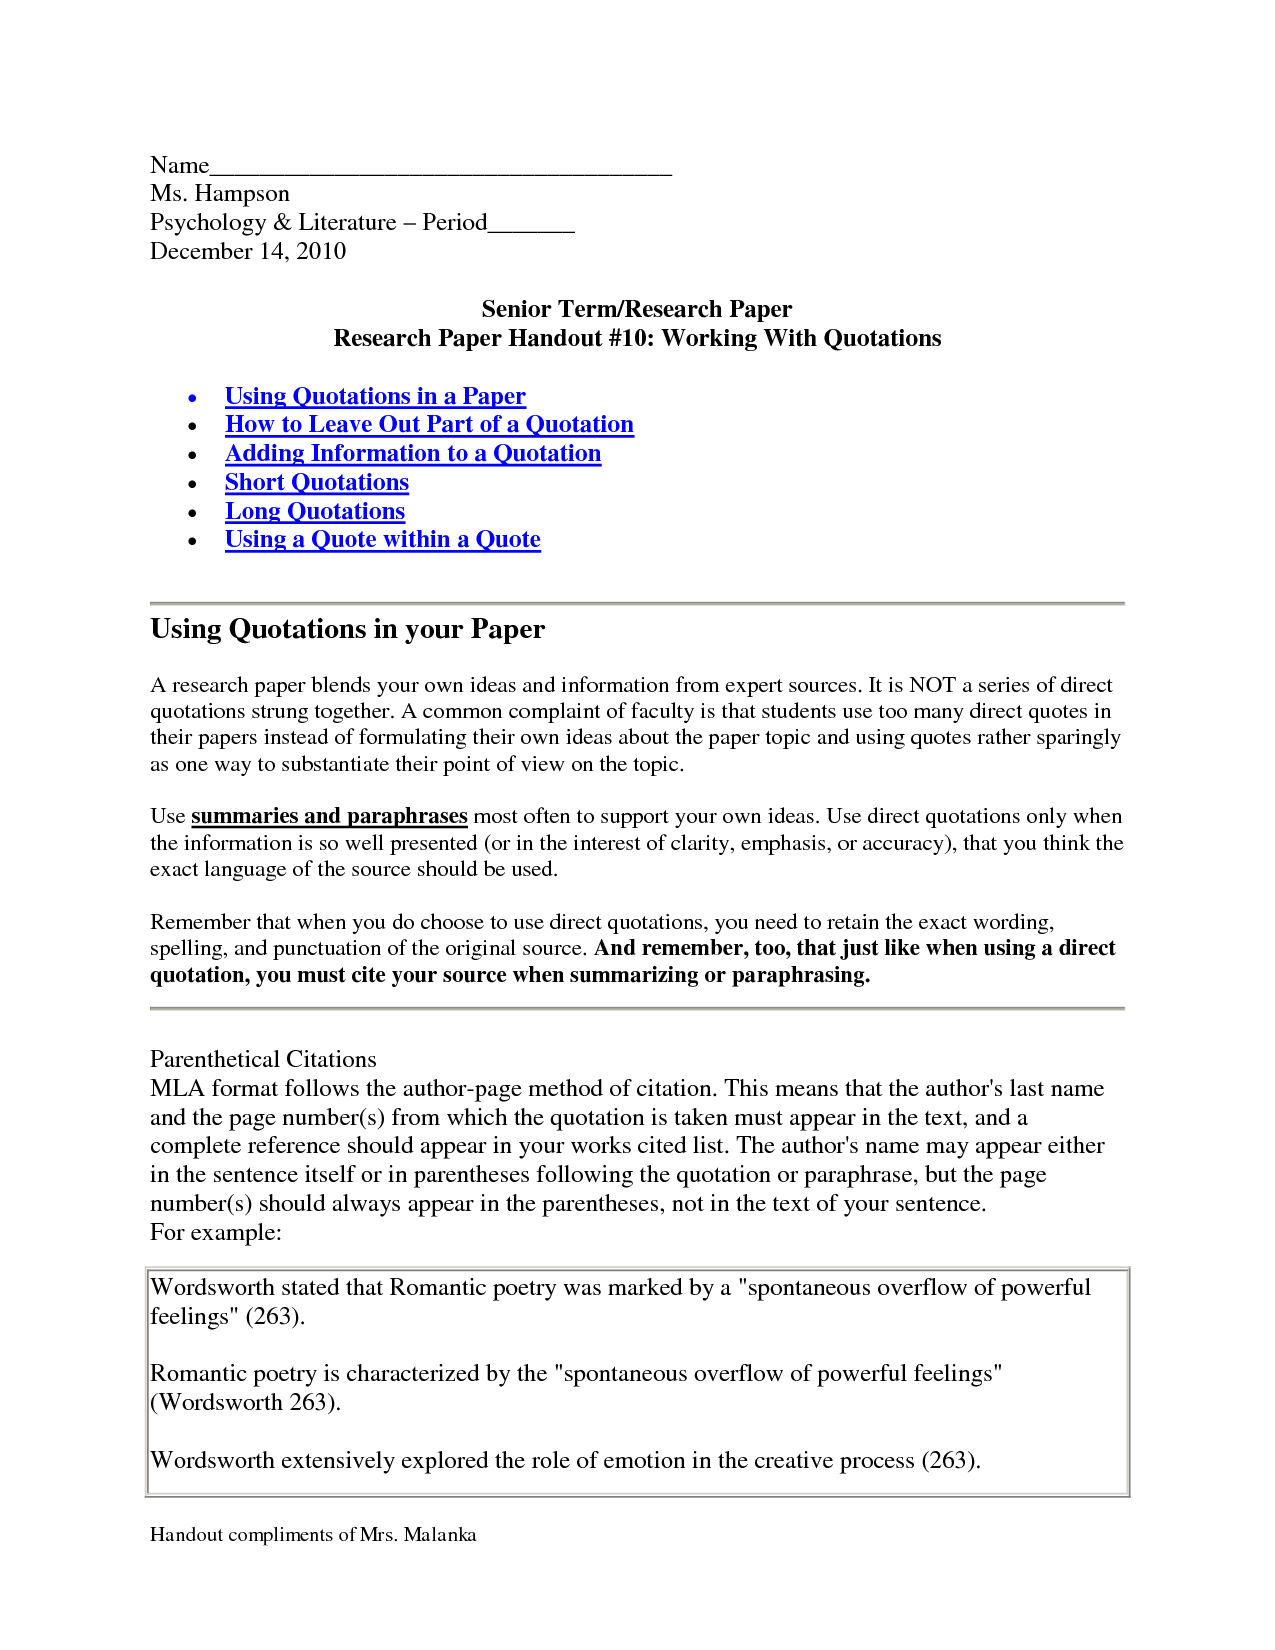 Quotations about research papers